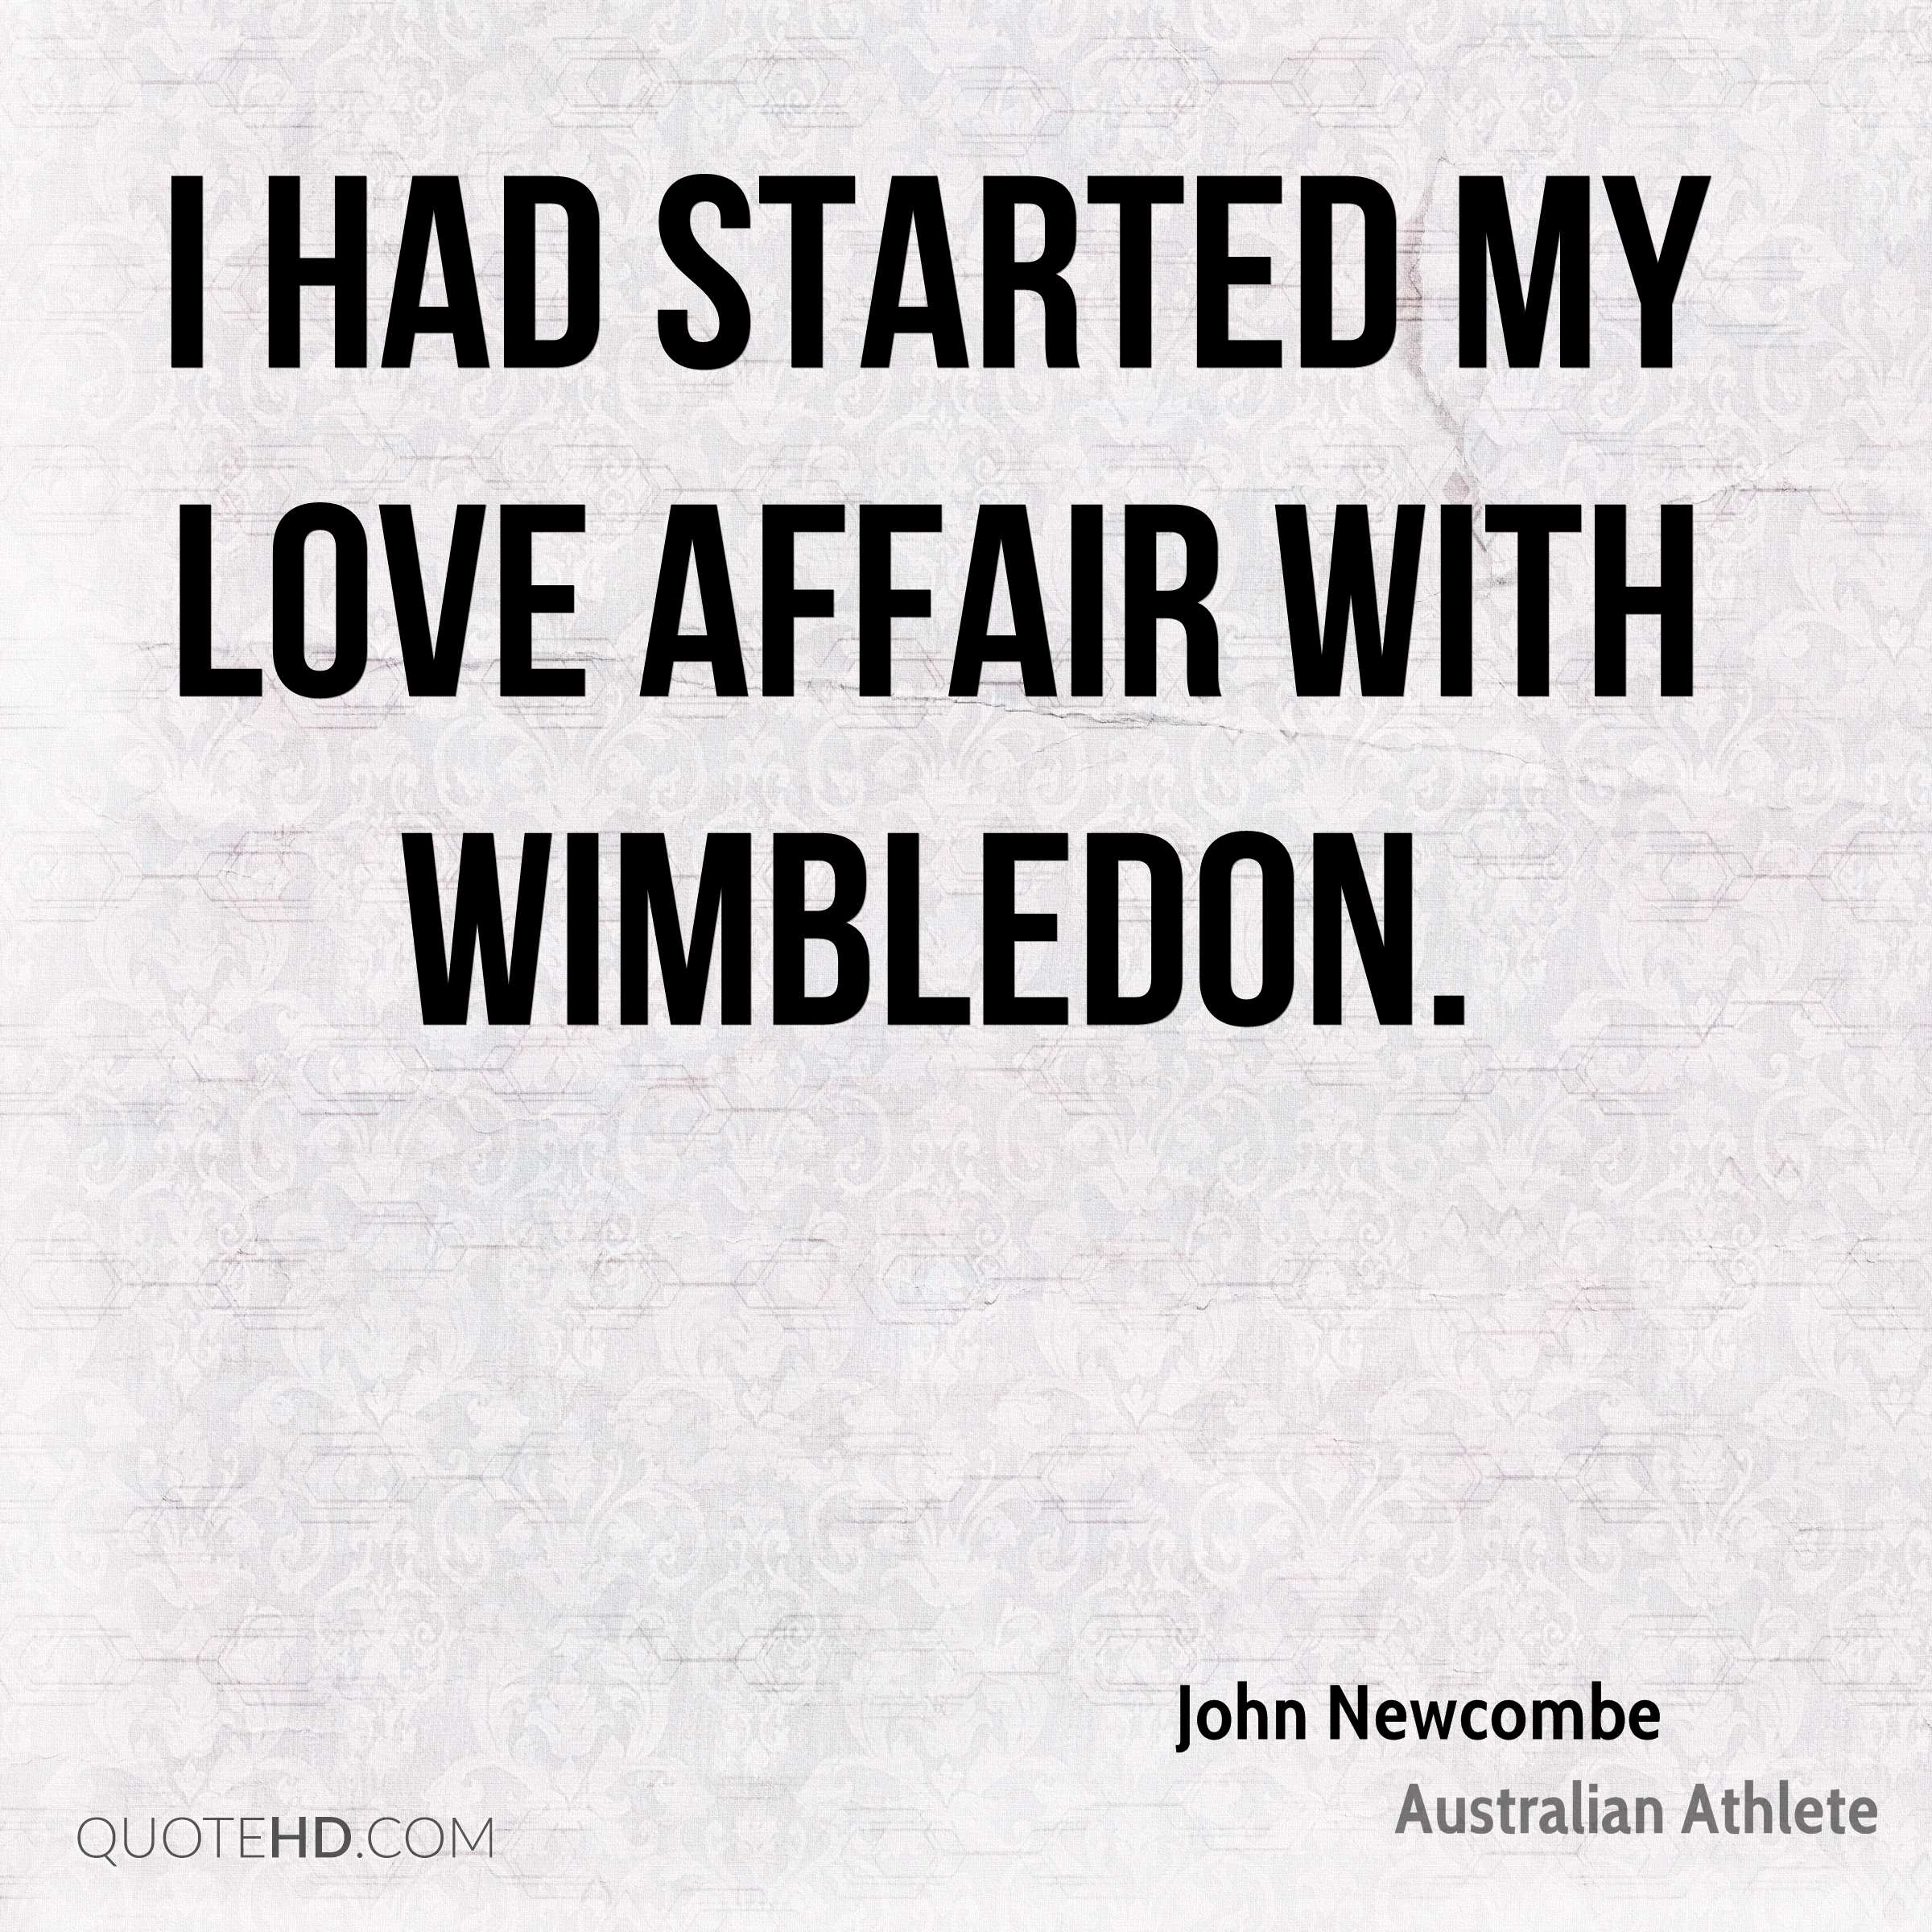 I had started my love affair with Wimbledon.